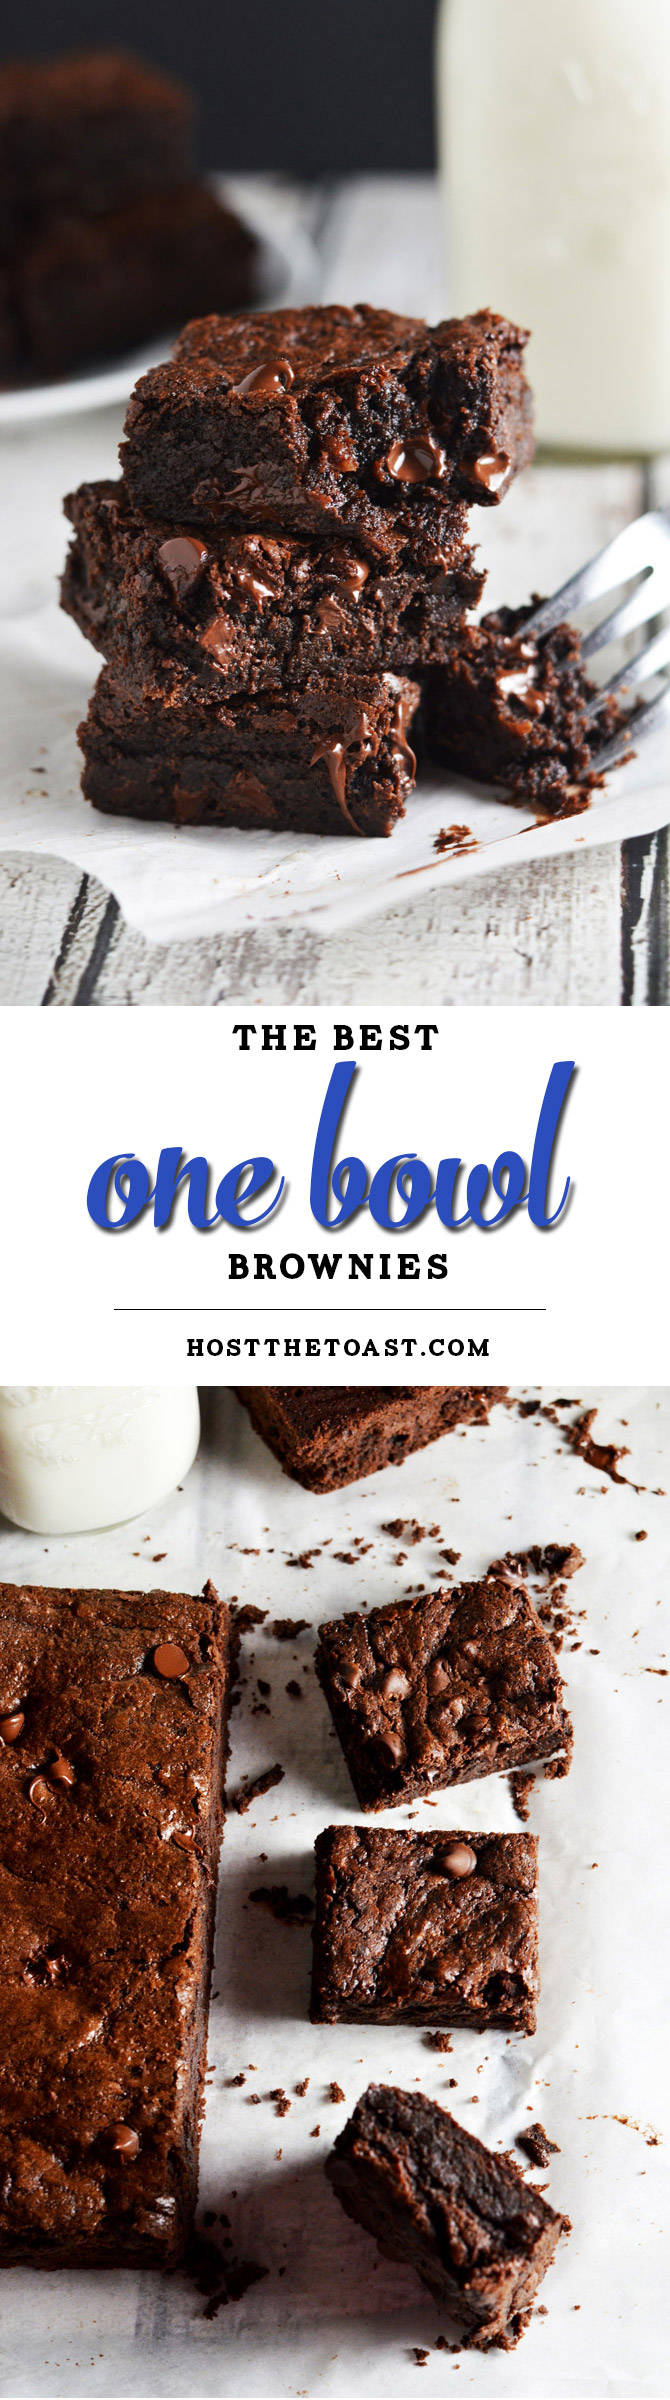 The Best One Bowl Brownies. These brownies will SERIOUSLY BLOW YOU AWAY. They don't require much more effort than the boxed stuff but they taste so much better! I'm in love with them. | hostthetoast.com